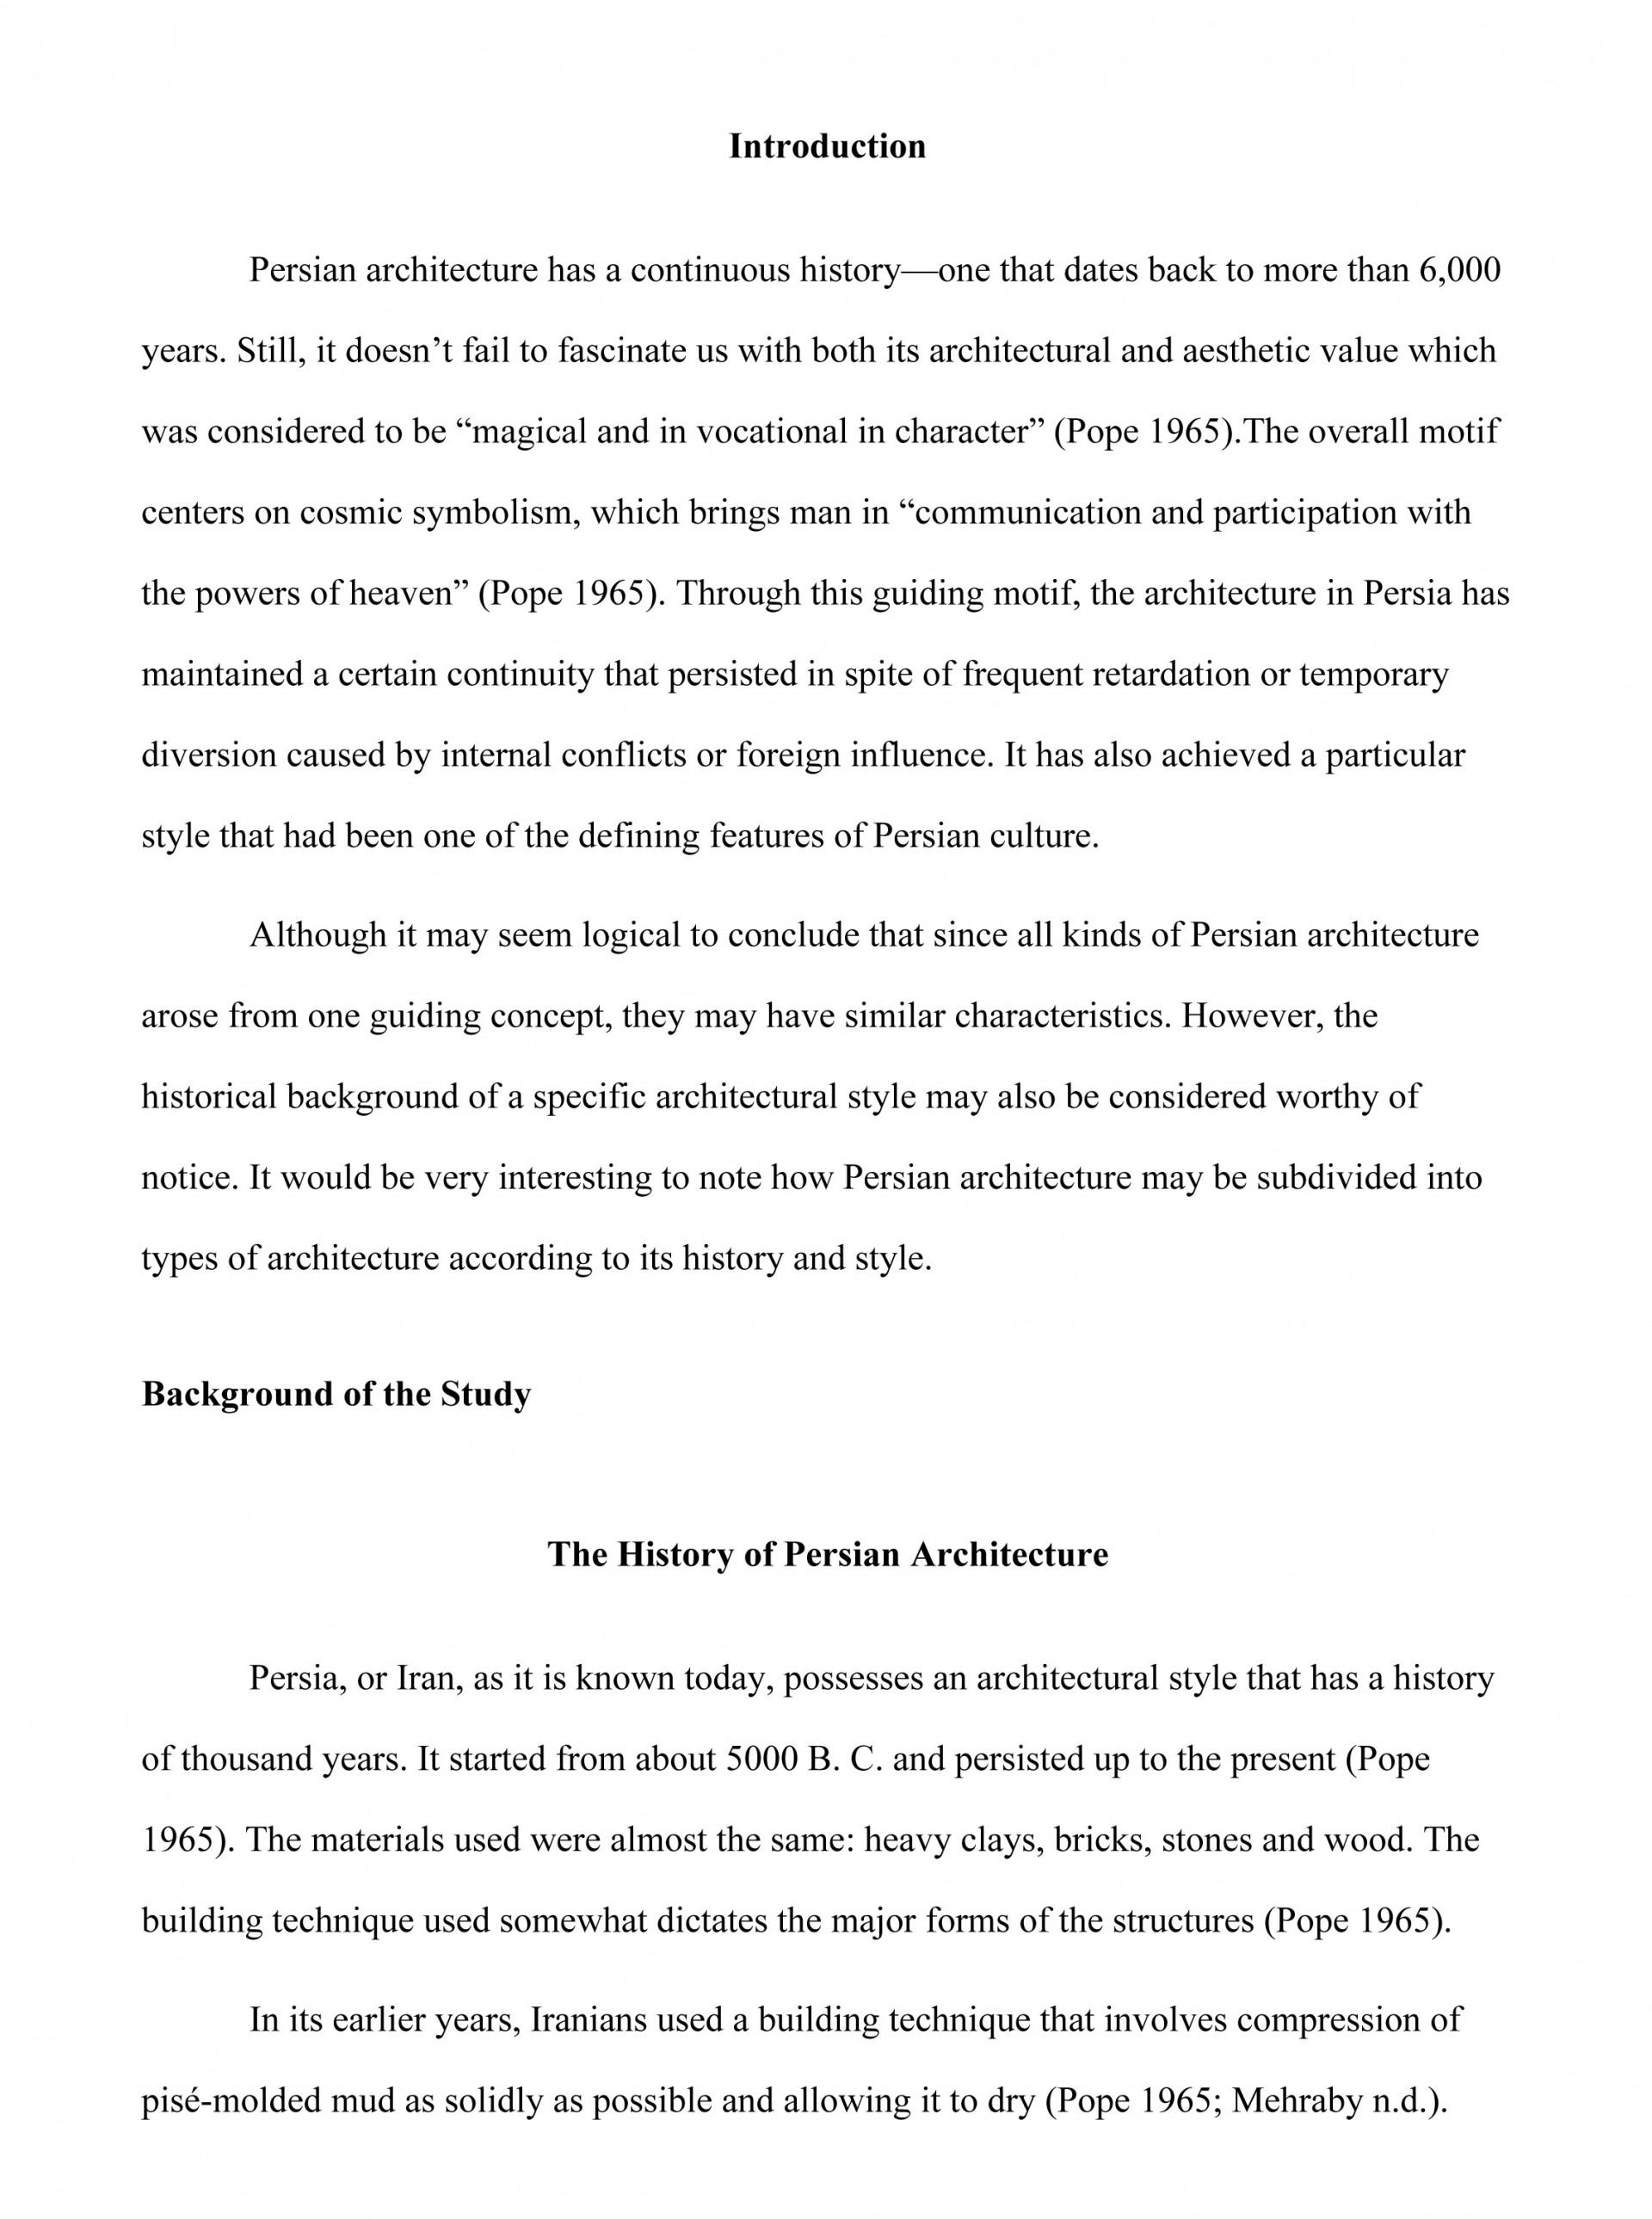 001 Dissertation Sample What Are Your Career Goals Essay Best Medical School Interests And Future 1920